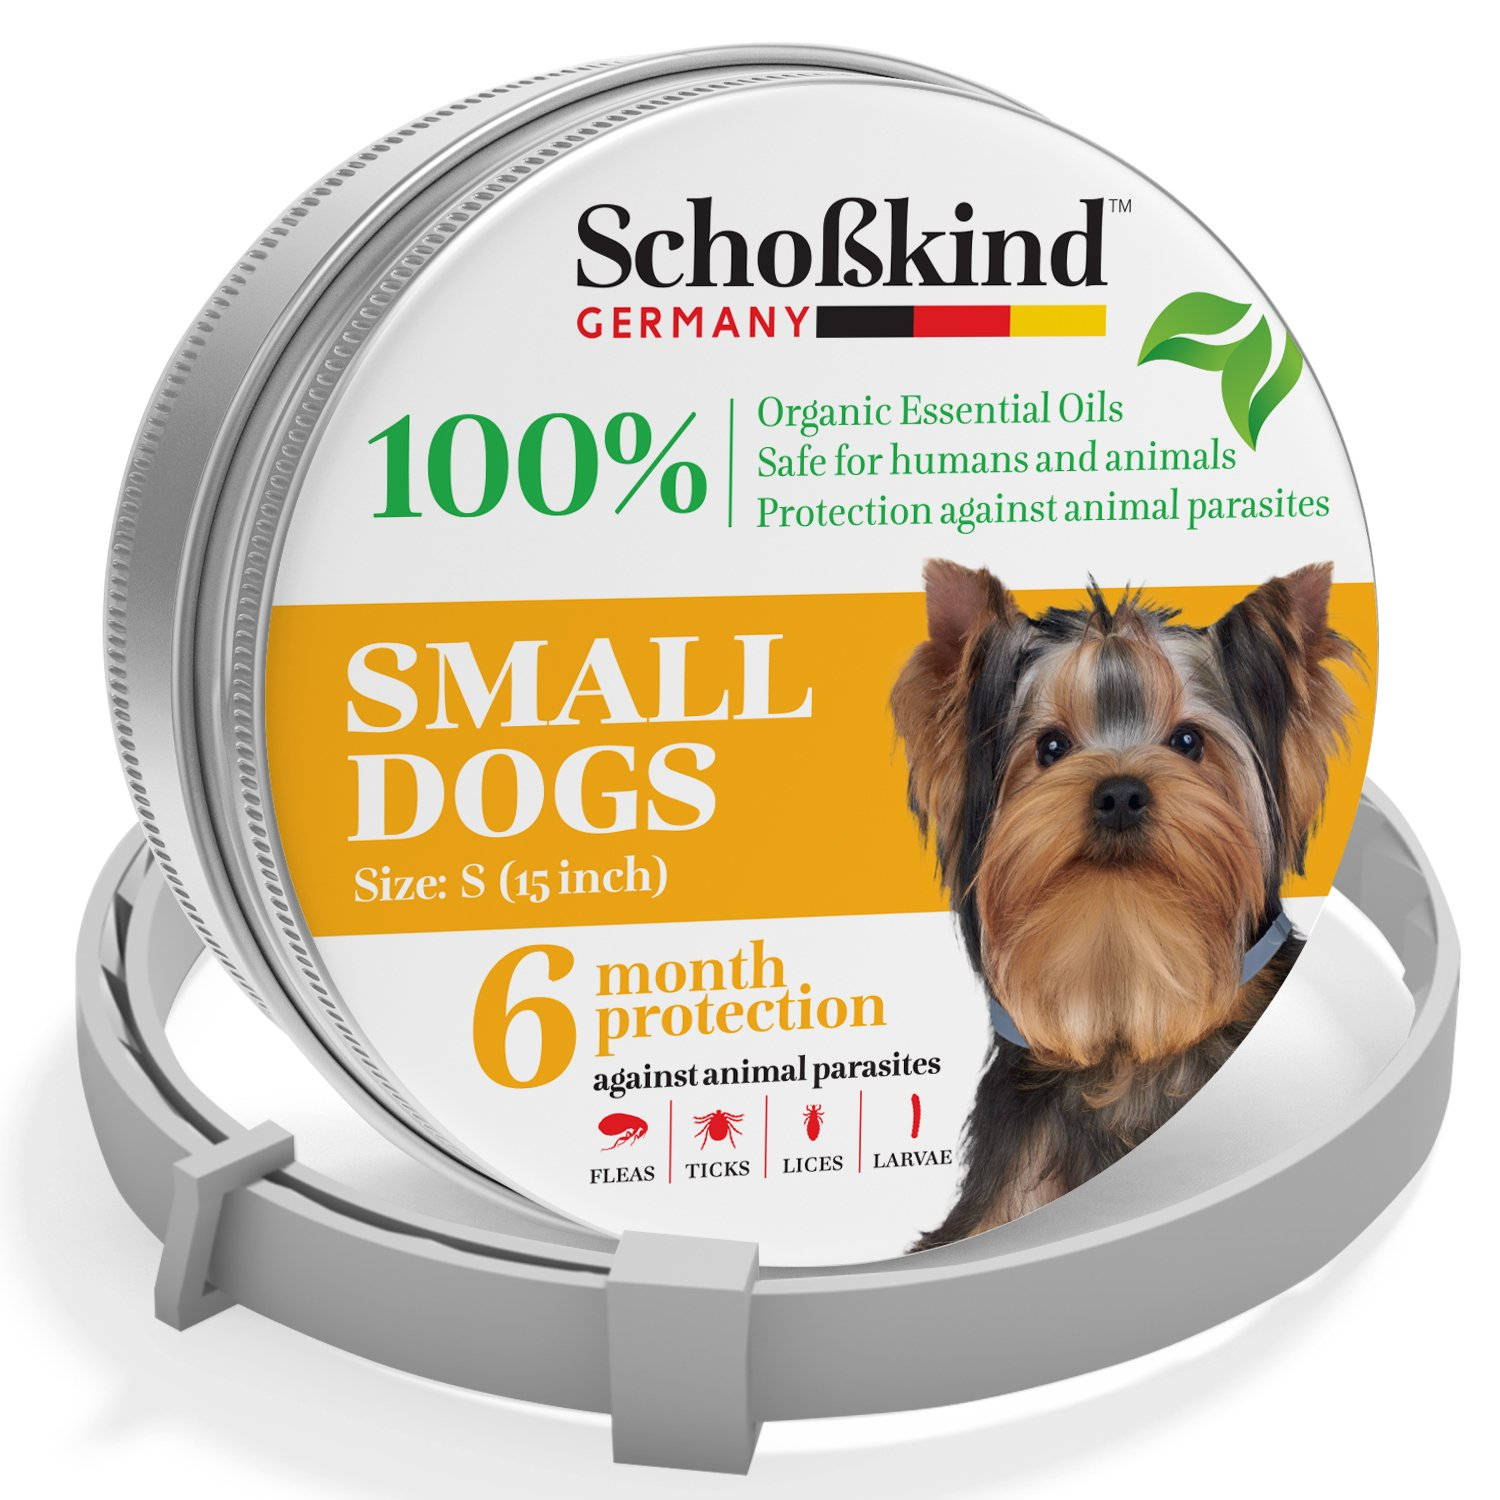 Organic Way Flea and Tick Collar for Small Dogs - Made for Germany - 100% Safe & Eco-Friendly - Based on Natural Oils - Flea and Tick Prevention Pets - 6-Month Protection - Waterproof Dog Flea Collar